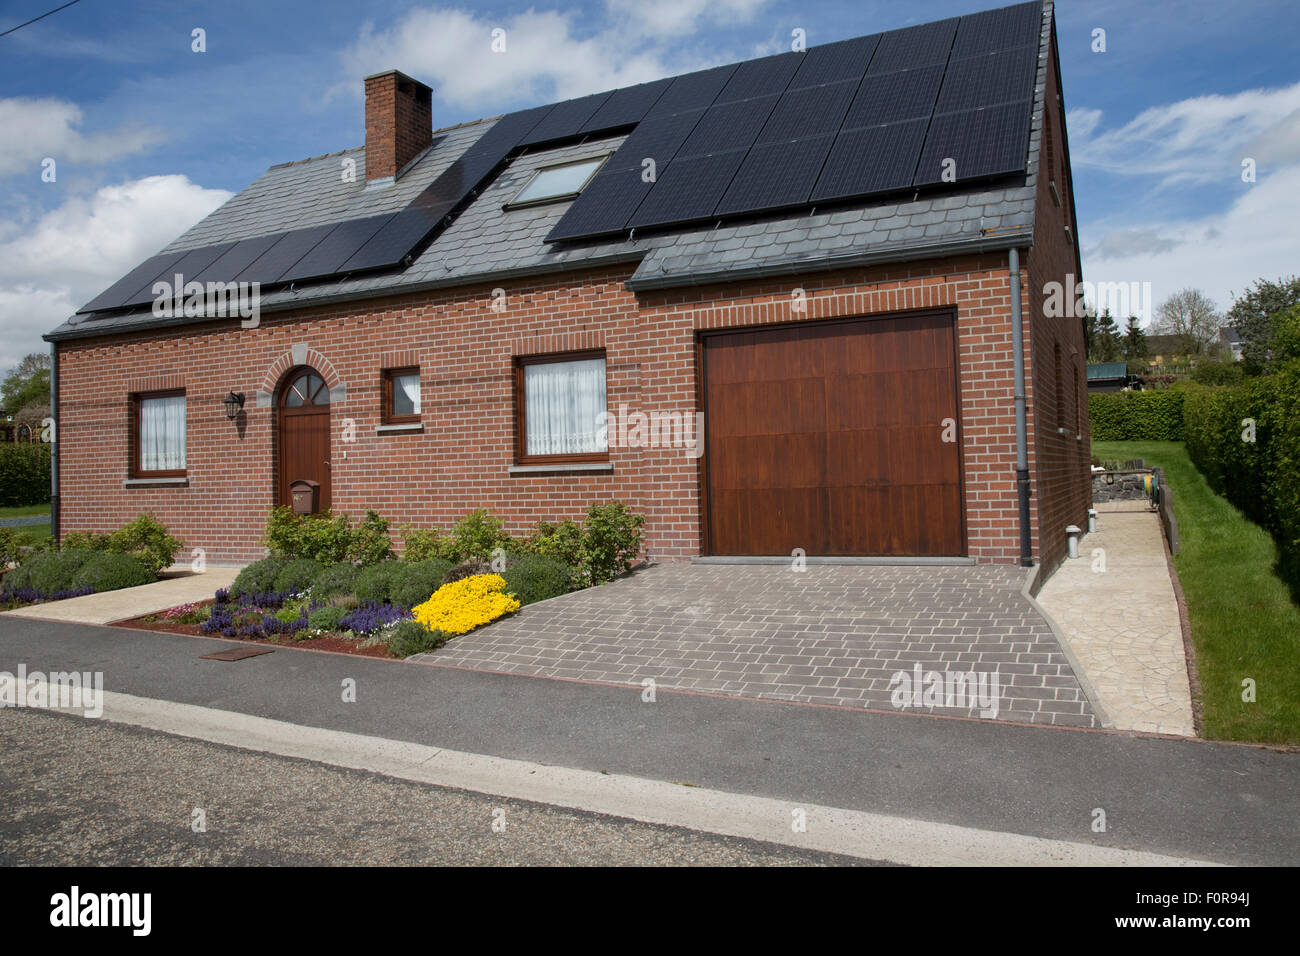 Photovoltaic PV solar panels on roof of domestic house in Germany. - Stock Image